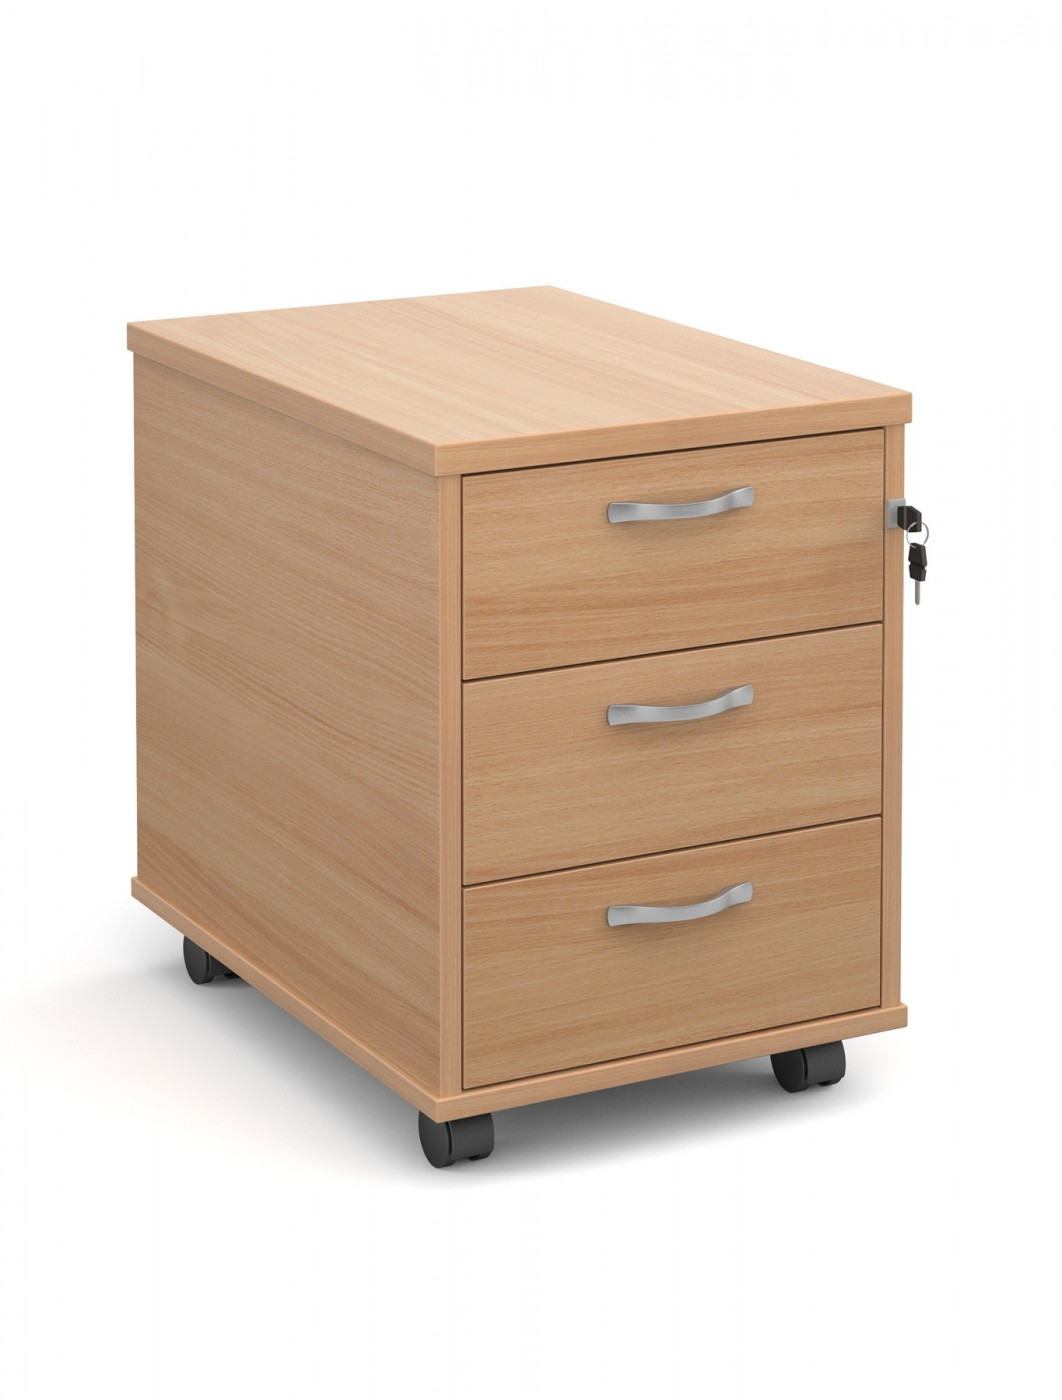 Mobile Pedestal 3 Drawer R3m 121 Office Furniture